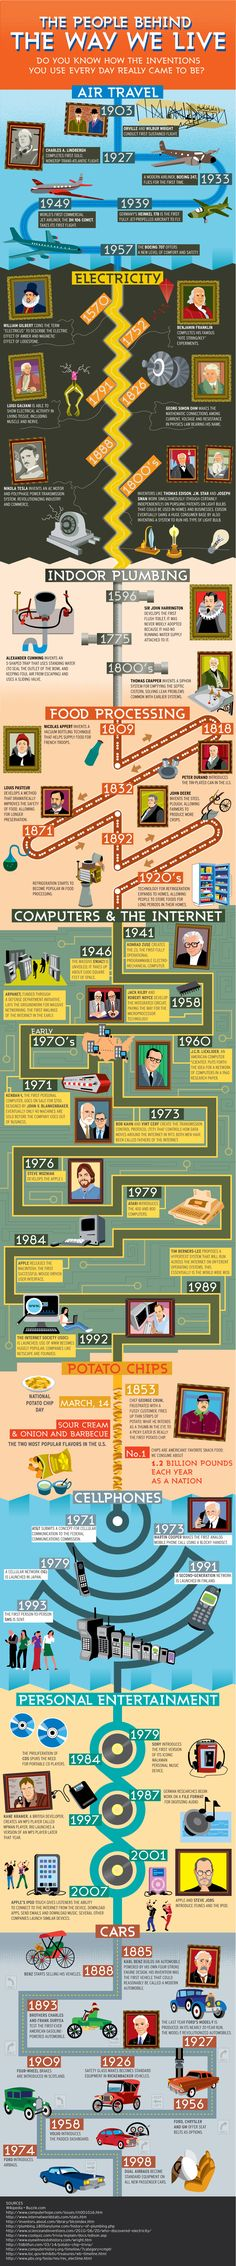 The People Behind The Way We Live Infographic #sschat